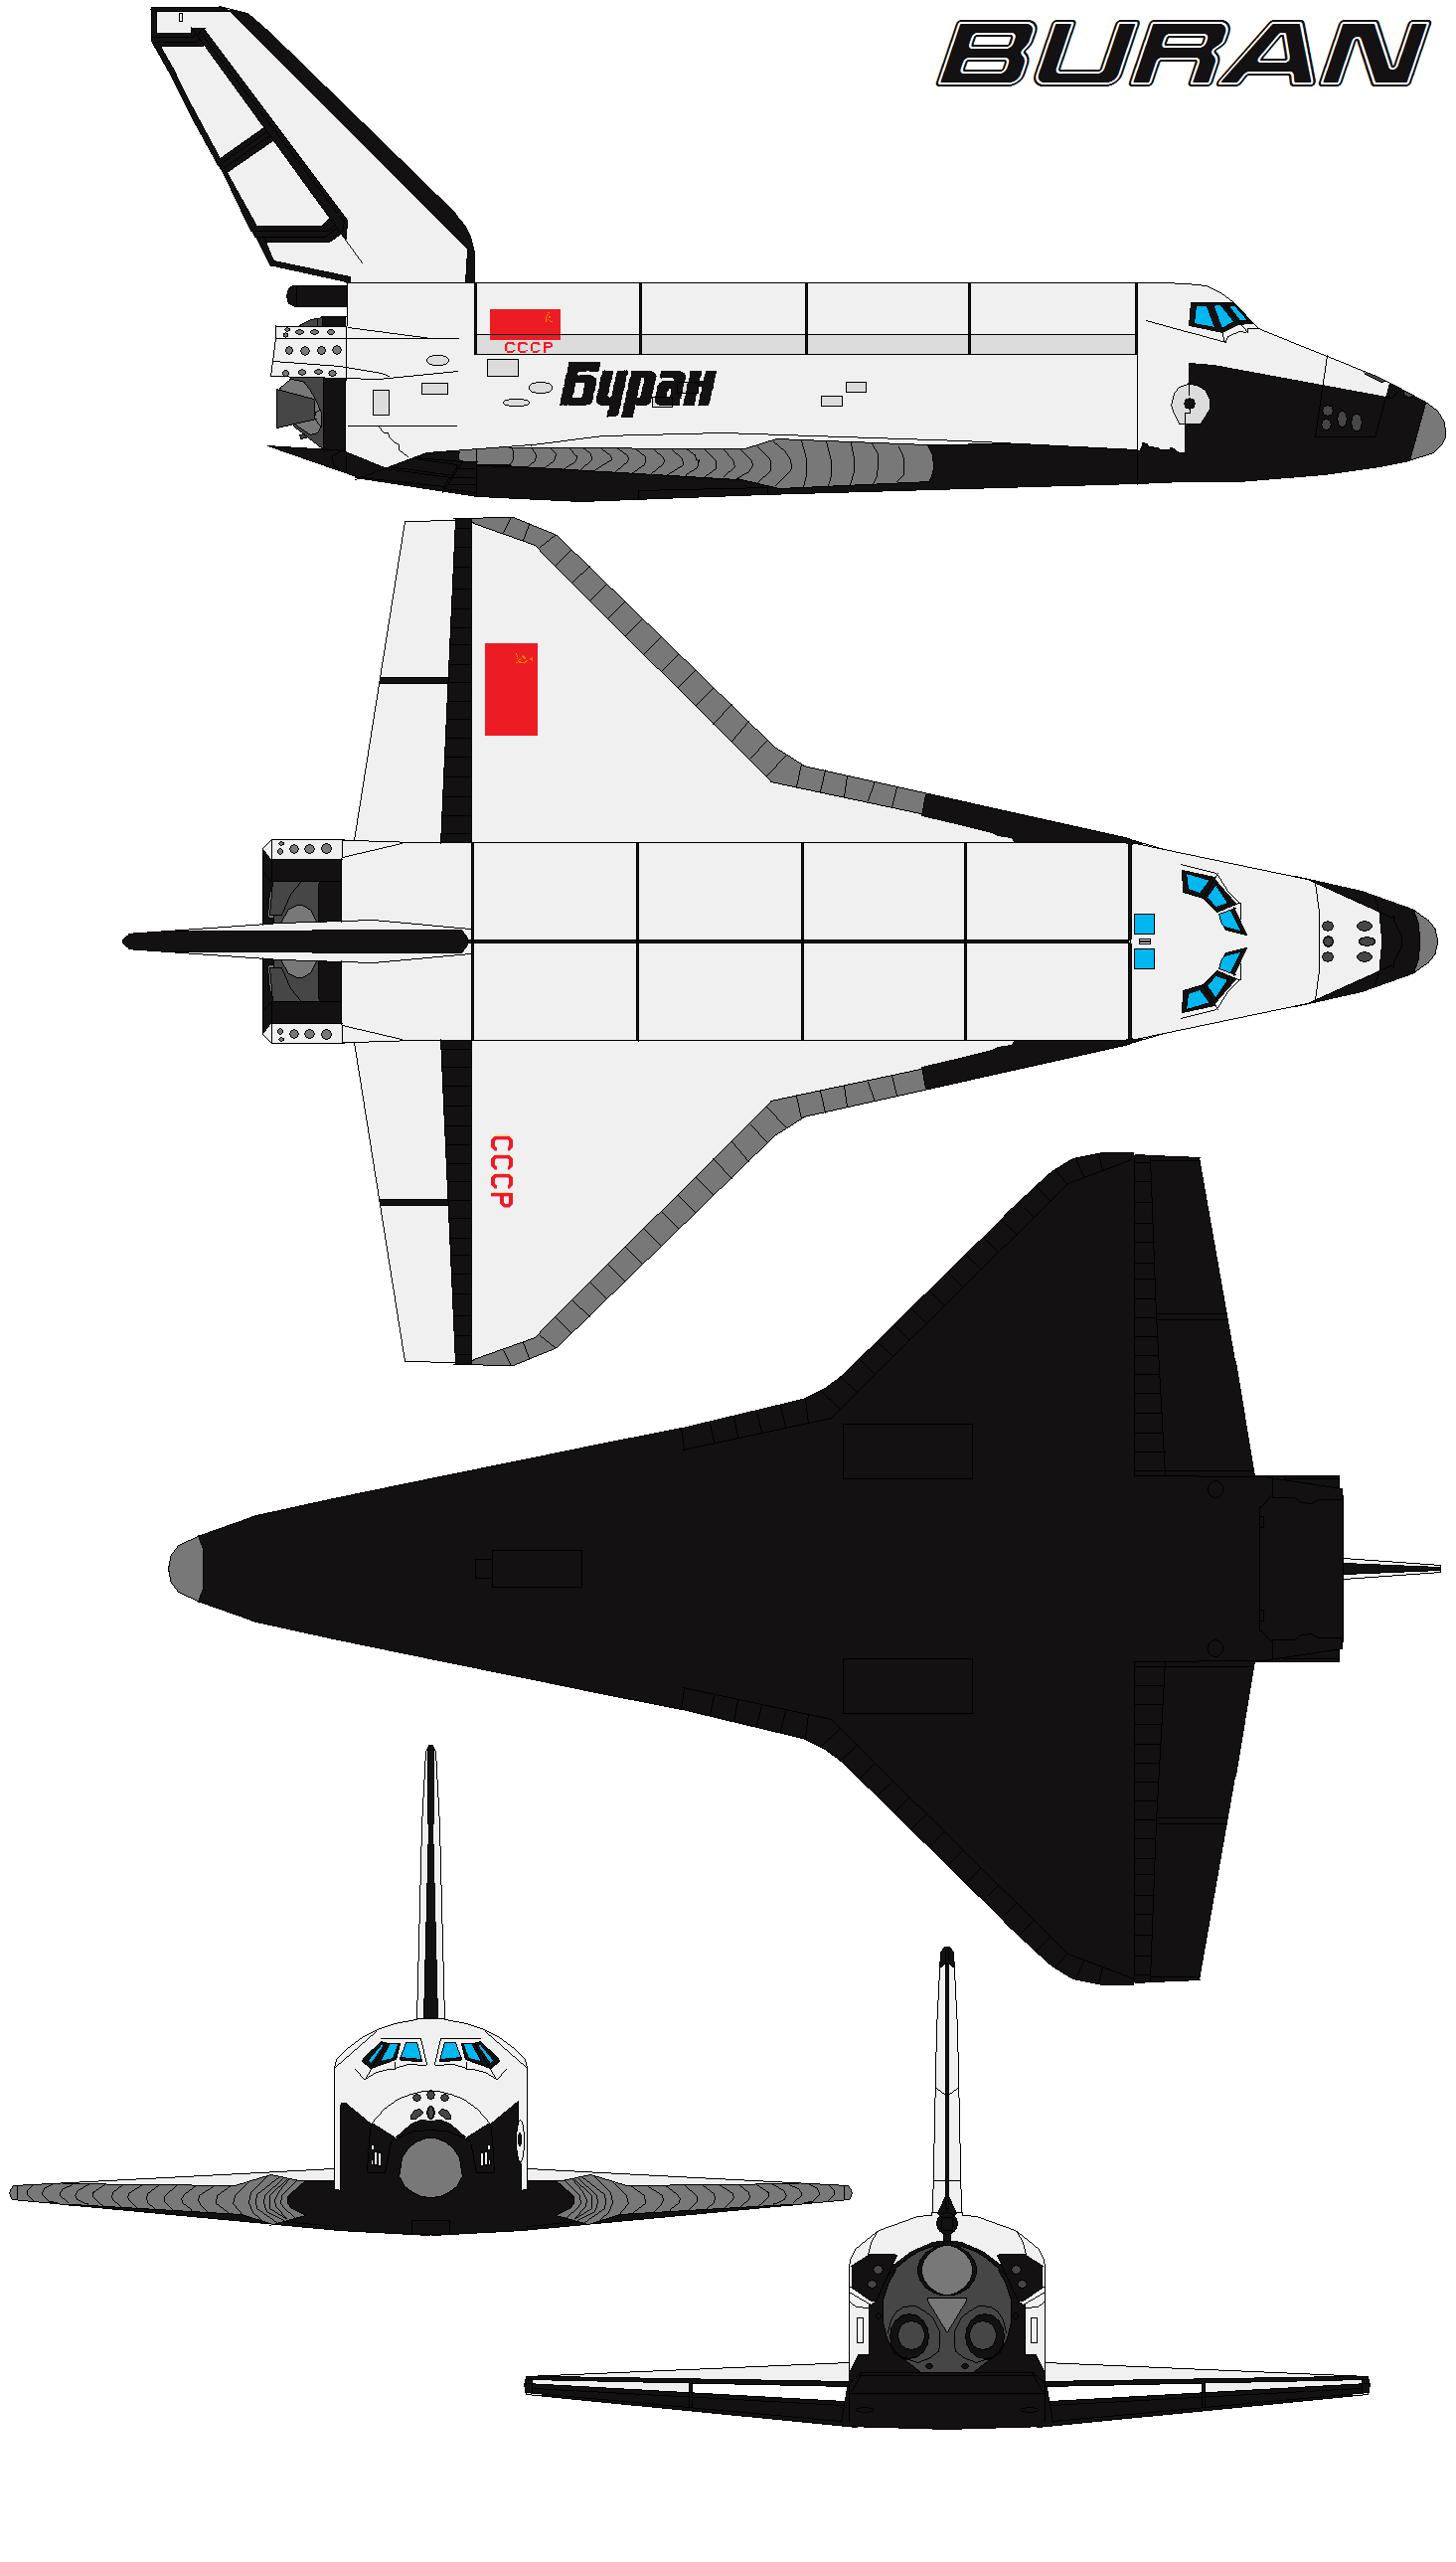 buran space shuttle compared to us - photo #22